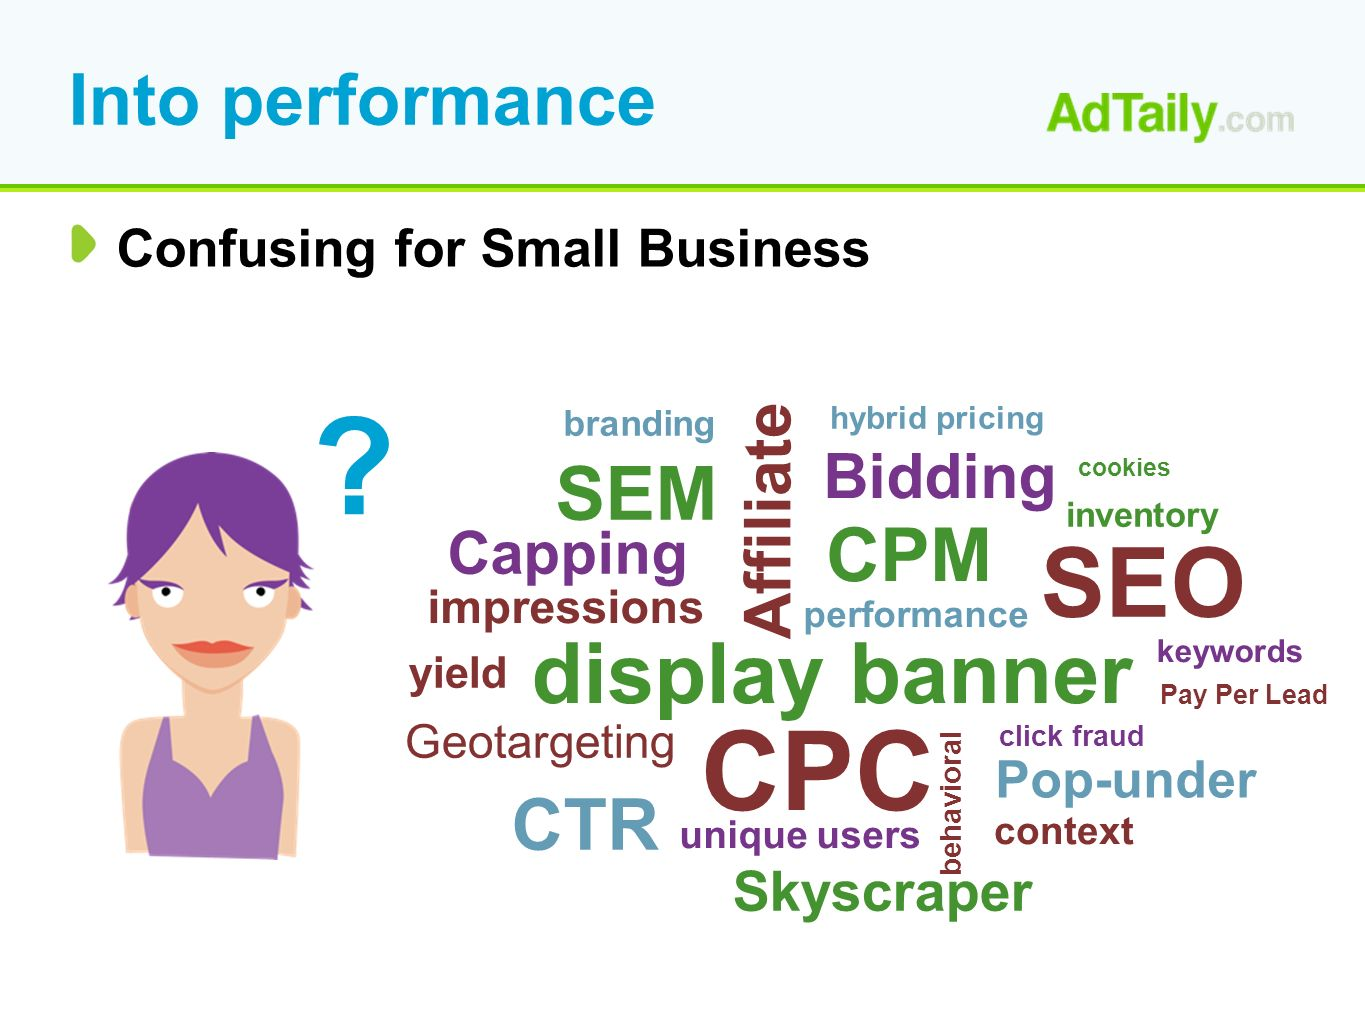 Into performance Confusing for Small Business CPC CPM Capping Affiliate Bidding display banner Geotargeting CTR SEM SEO Pop-under Skyscraper behavioral unique users context impressions performance branding click fraud hybrid pricing inventory keywords Pay Per Lead cookies .